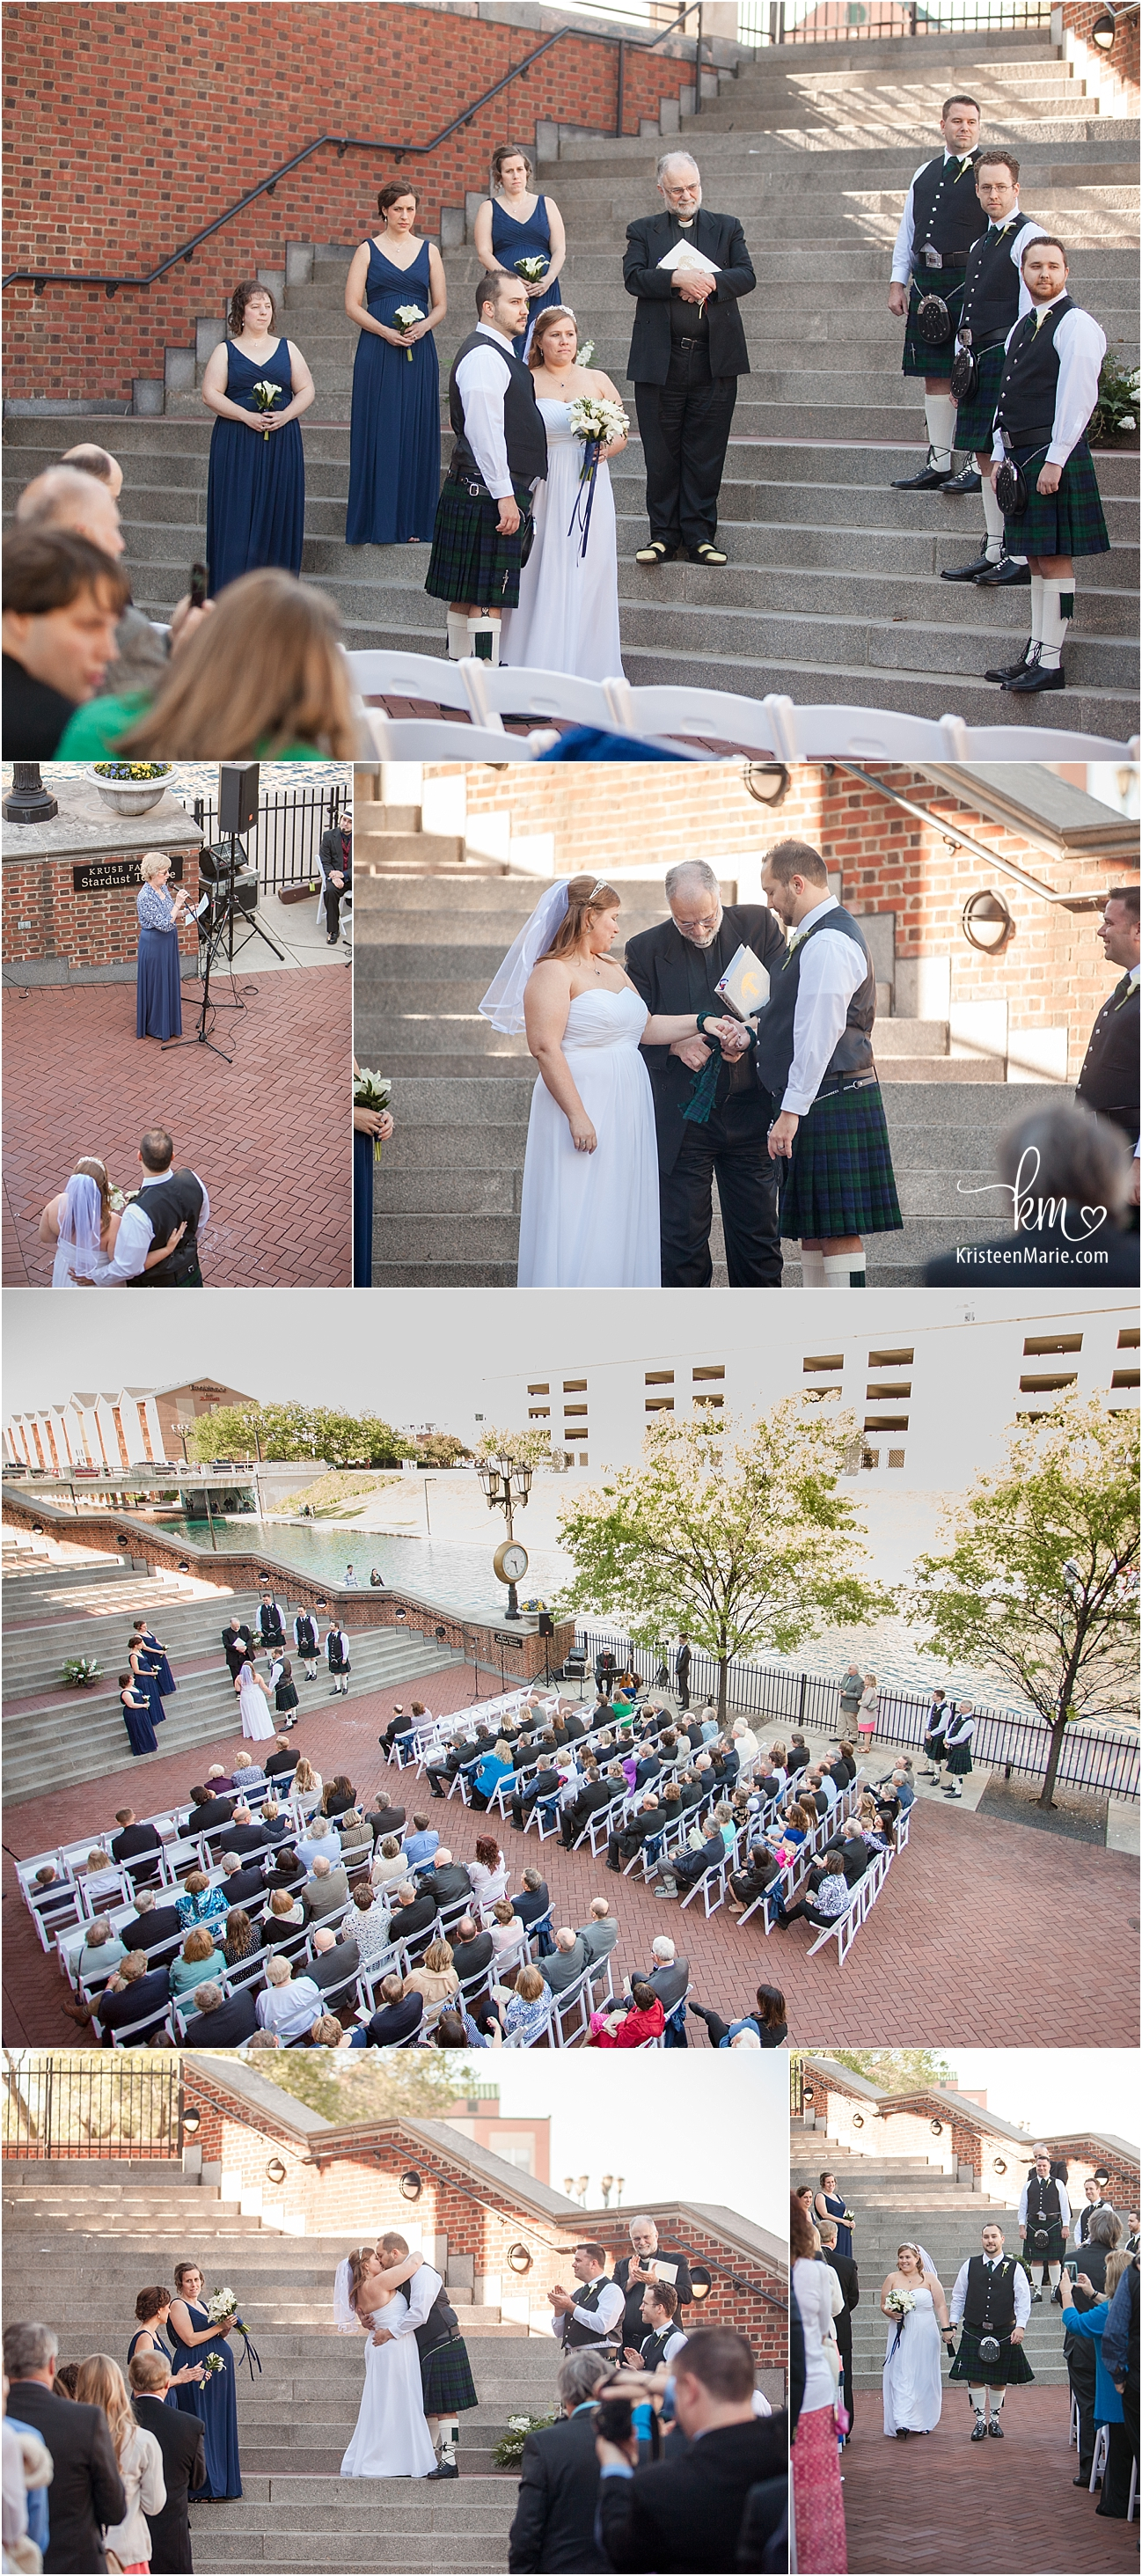 Indiana historical society outdoor wedding ceremony on canal in Indy